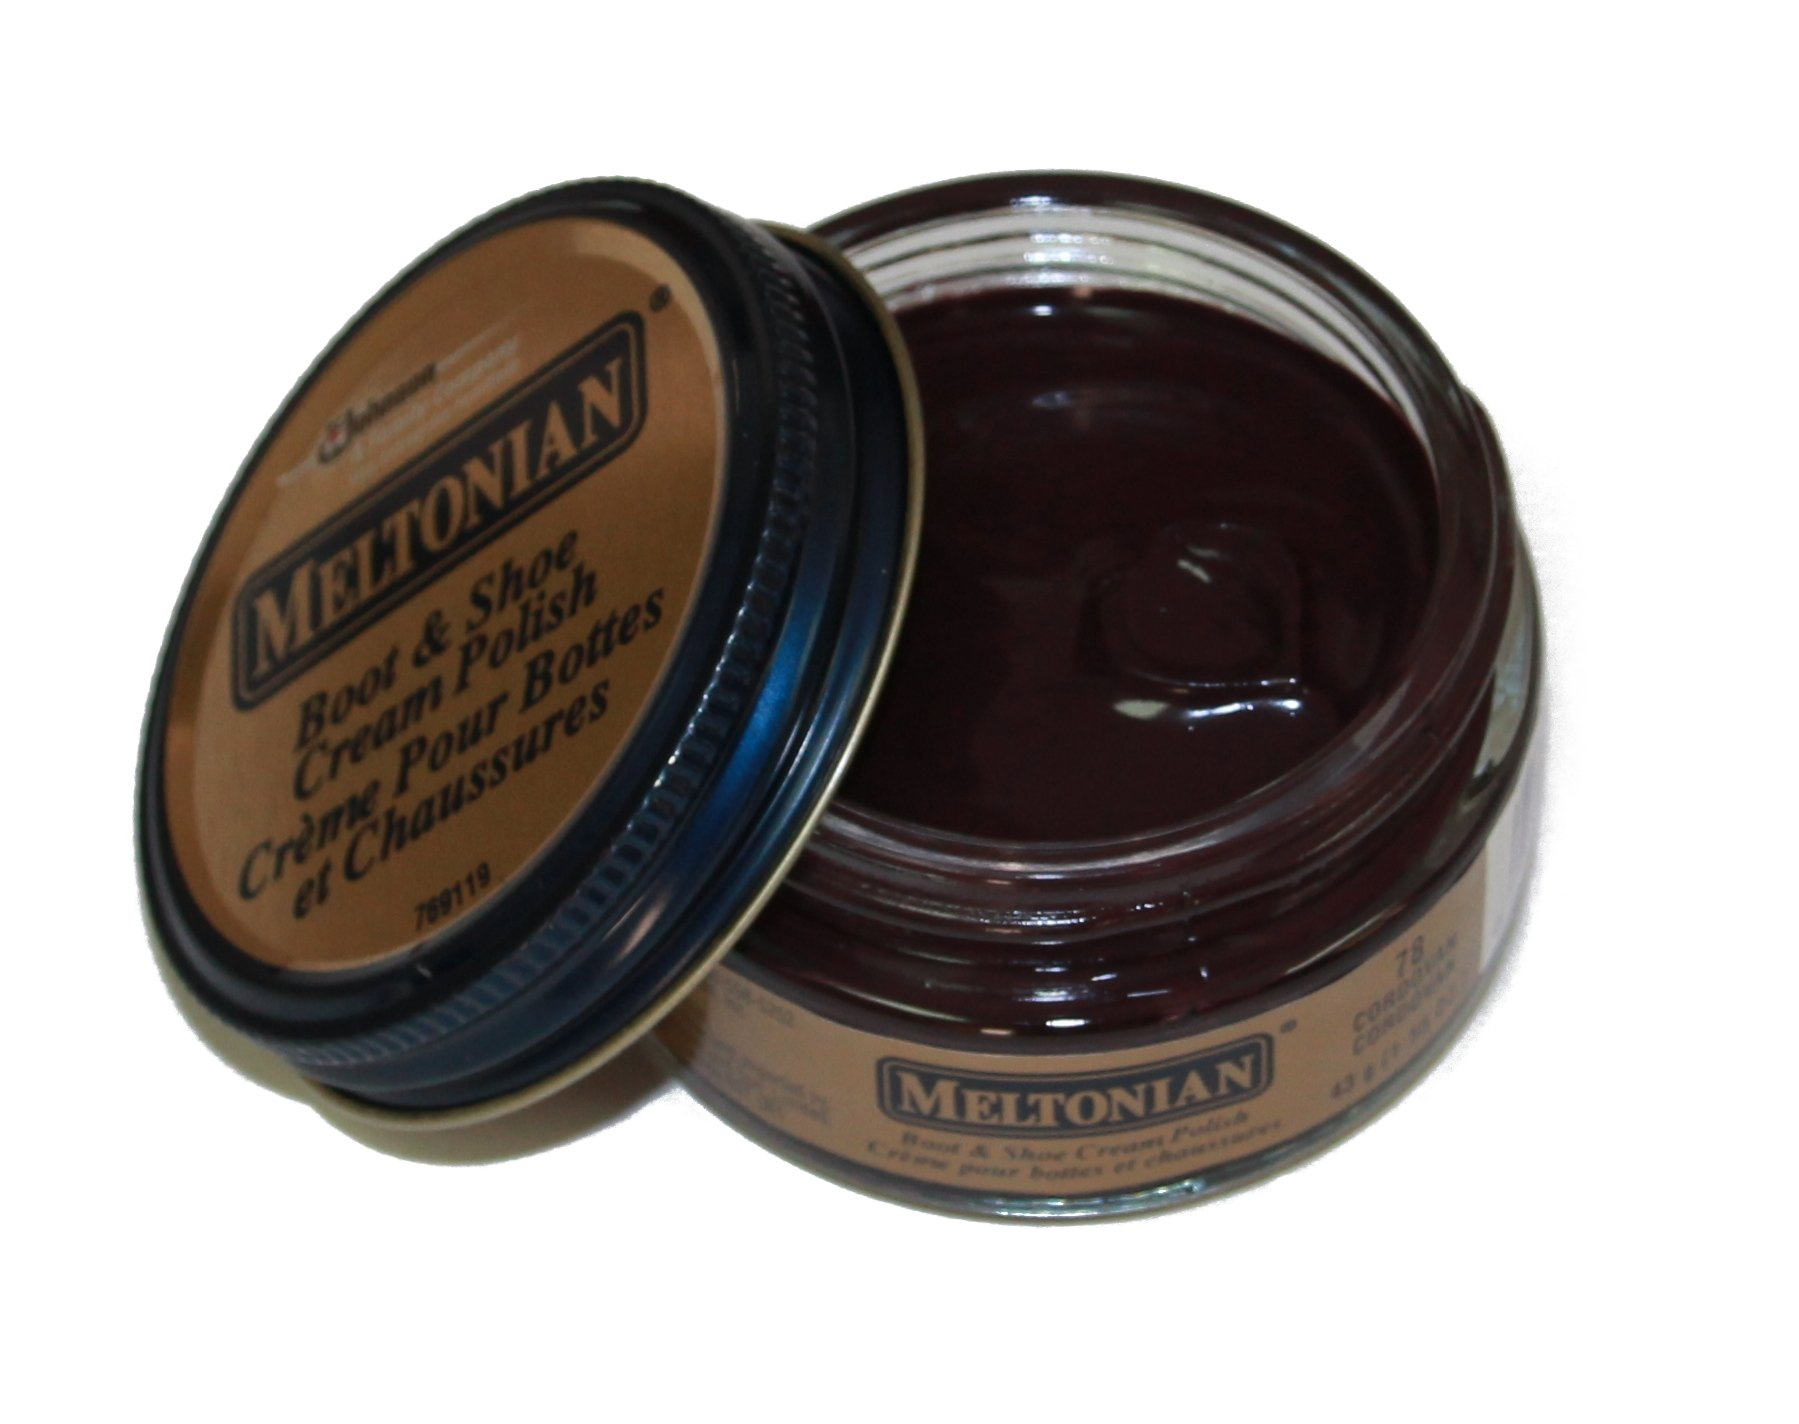 Meltonian Shoe Cream-Cordovan-078